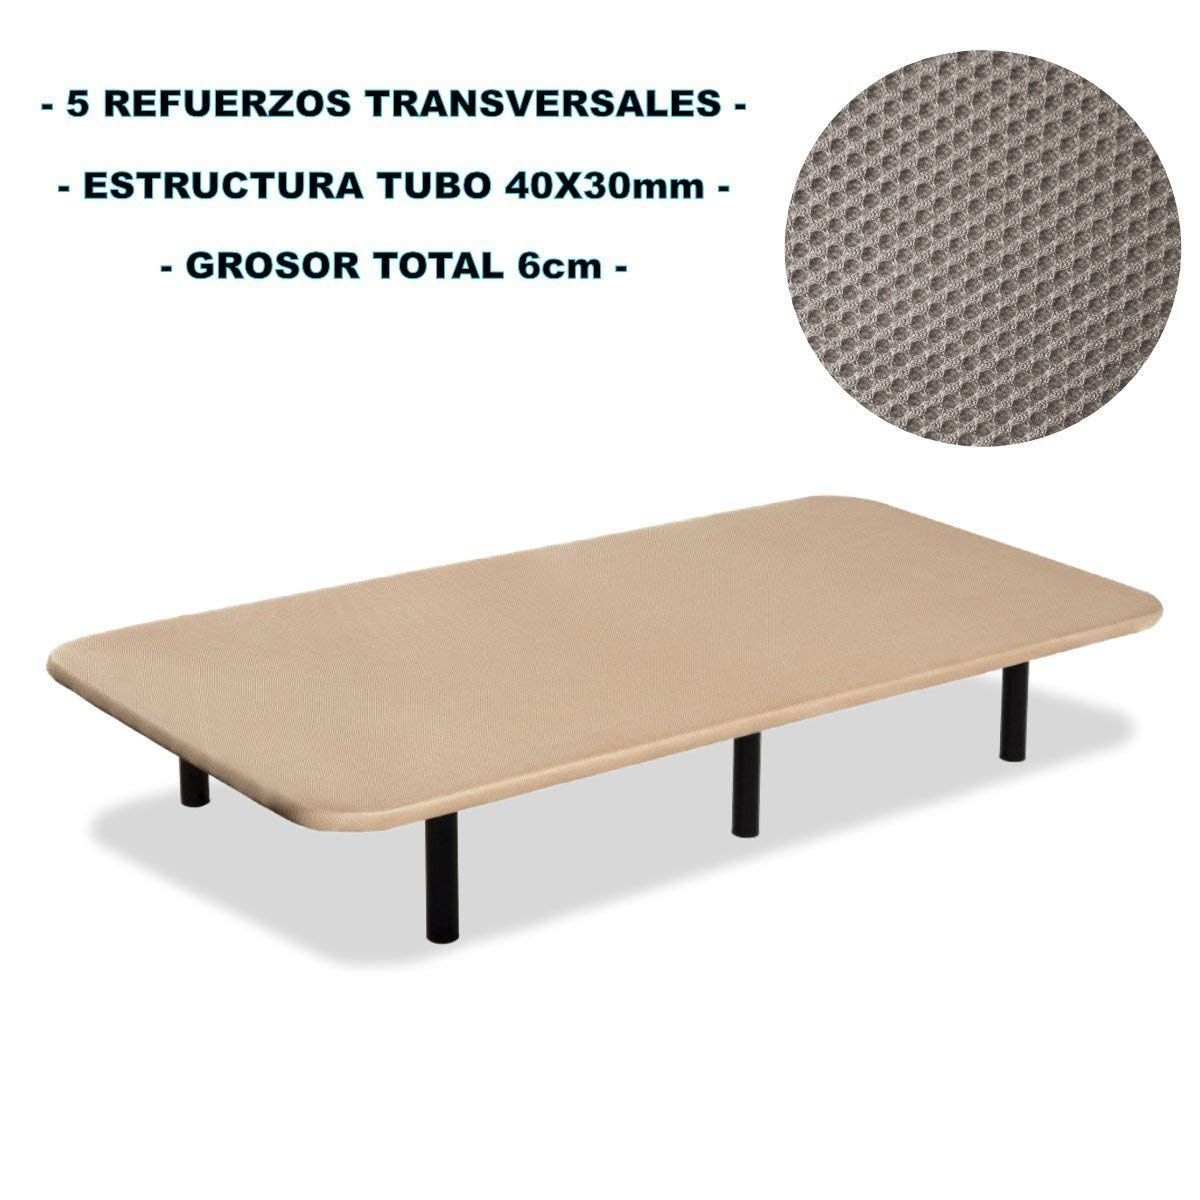 Bonitex - Base tapizada 3D 150x190cm + 6 patas, 5 refuerzos transversales, grosor 6cm, transpirable, color beige: Amazon.es: Hogar